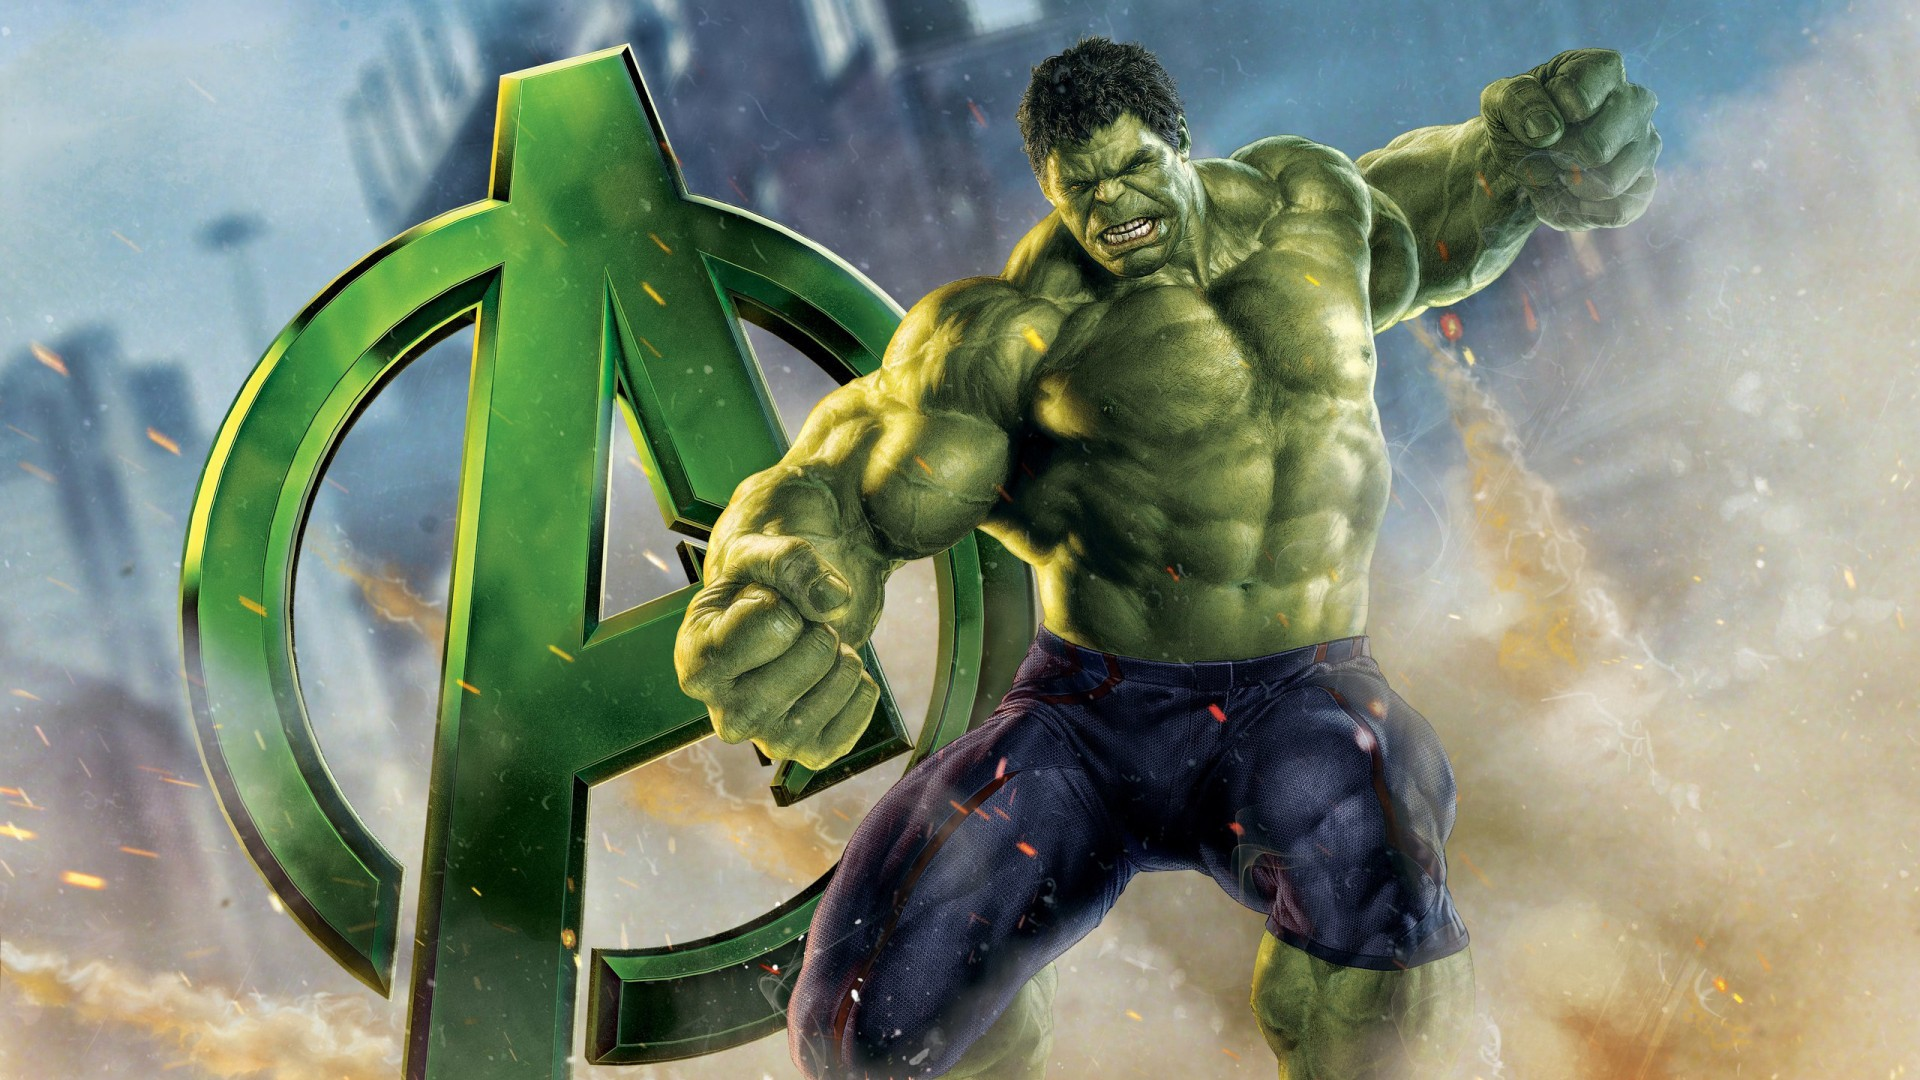 Simpsons Wallpaper 3d Avengers Hulk Wallpapers Hd Wallpapers Id 15639